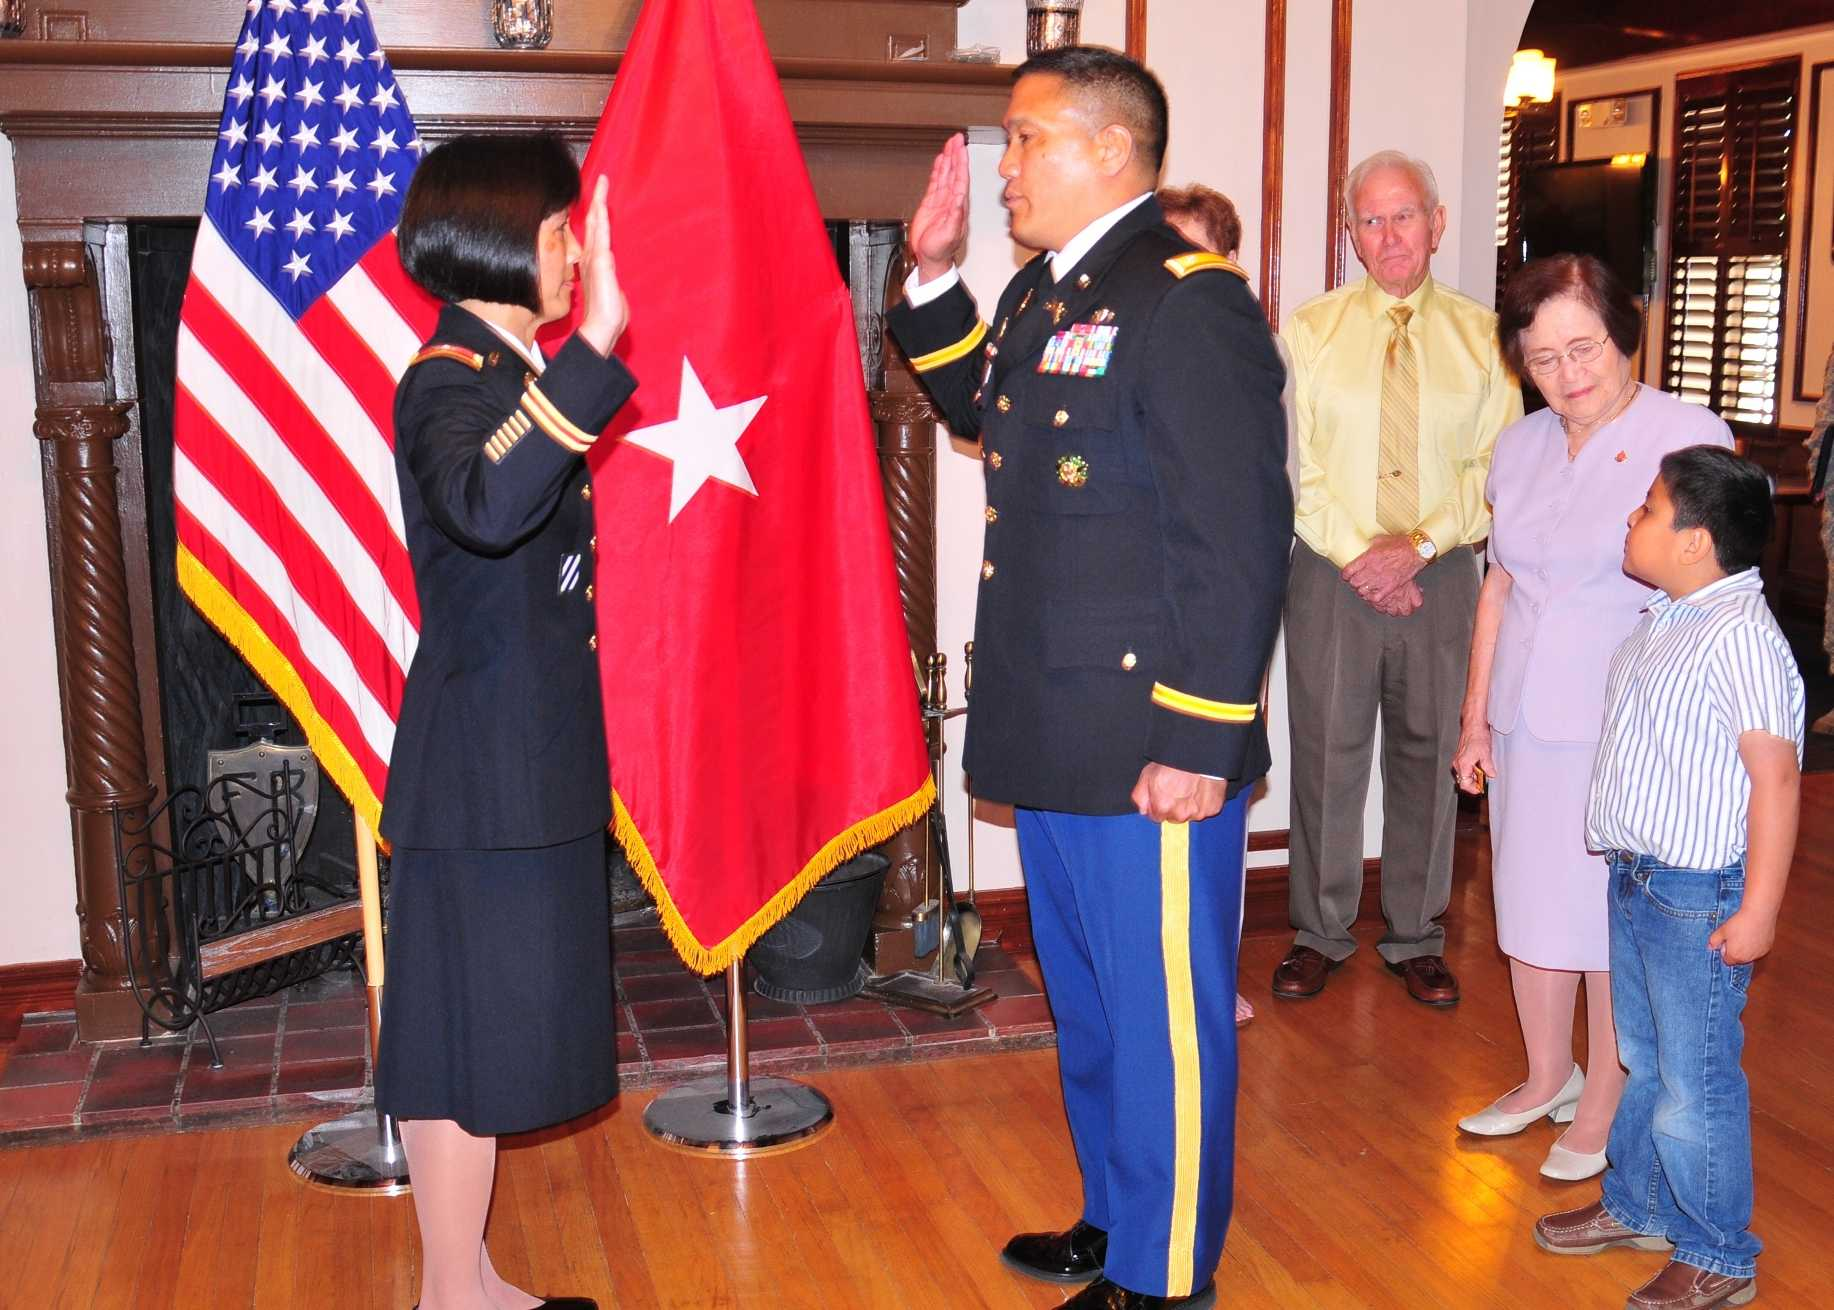 Col. Leslie Caballero, left, is sworn in to her new rank by her brother, Lt. Col. Leo Caballero, who read her oath of office while family and friends watched nearby. Photo by Lt. Col. Deanna Bague